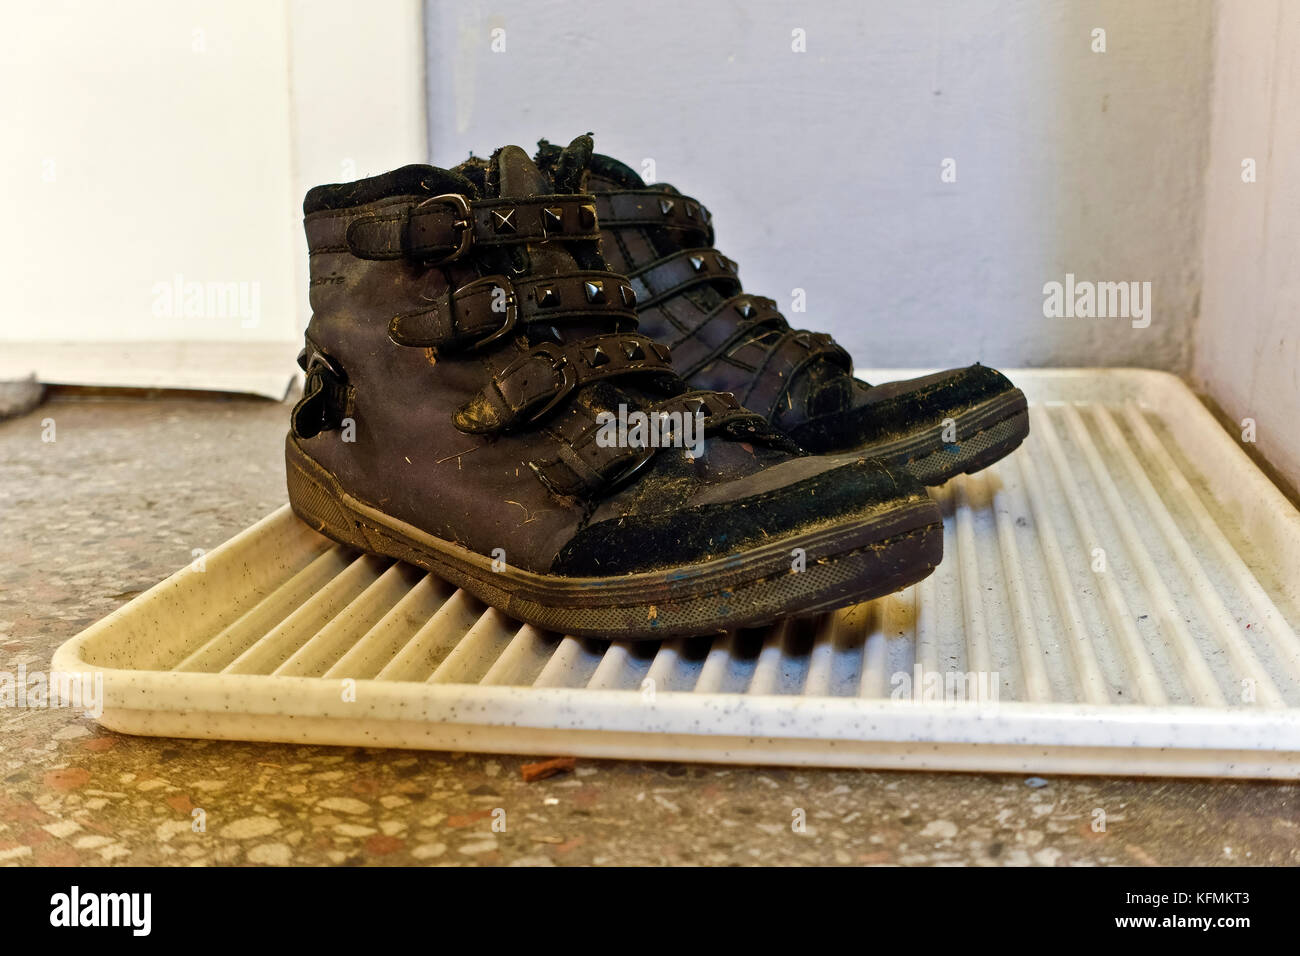 dusty walking shoes stockfotos dusty walking shoes bilder alamy. Black Bedroom Furniture Sets. Home Design Ideas